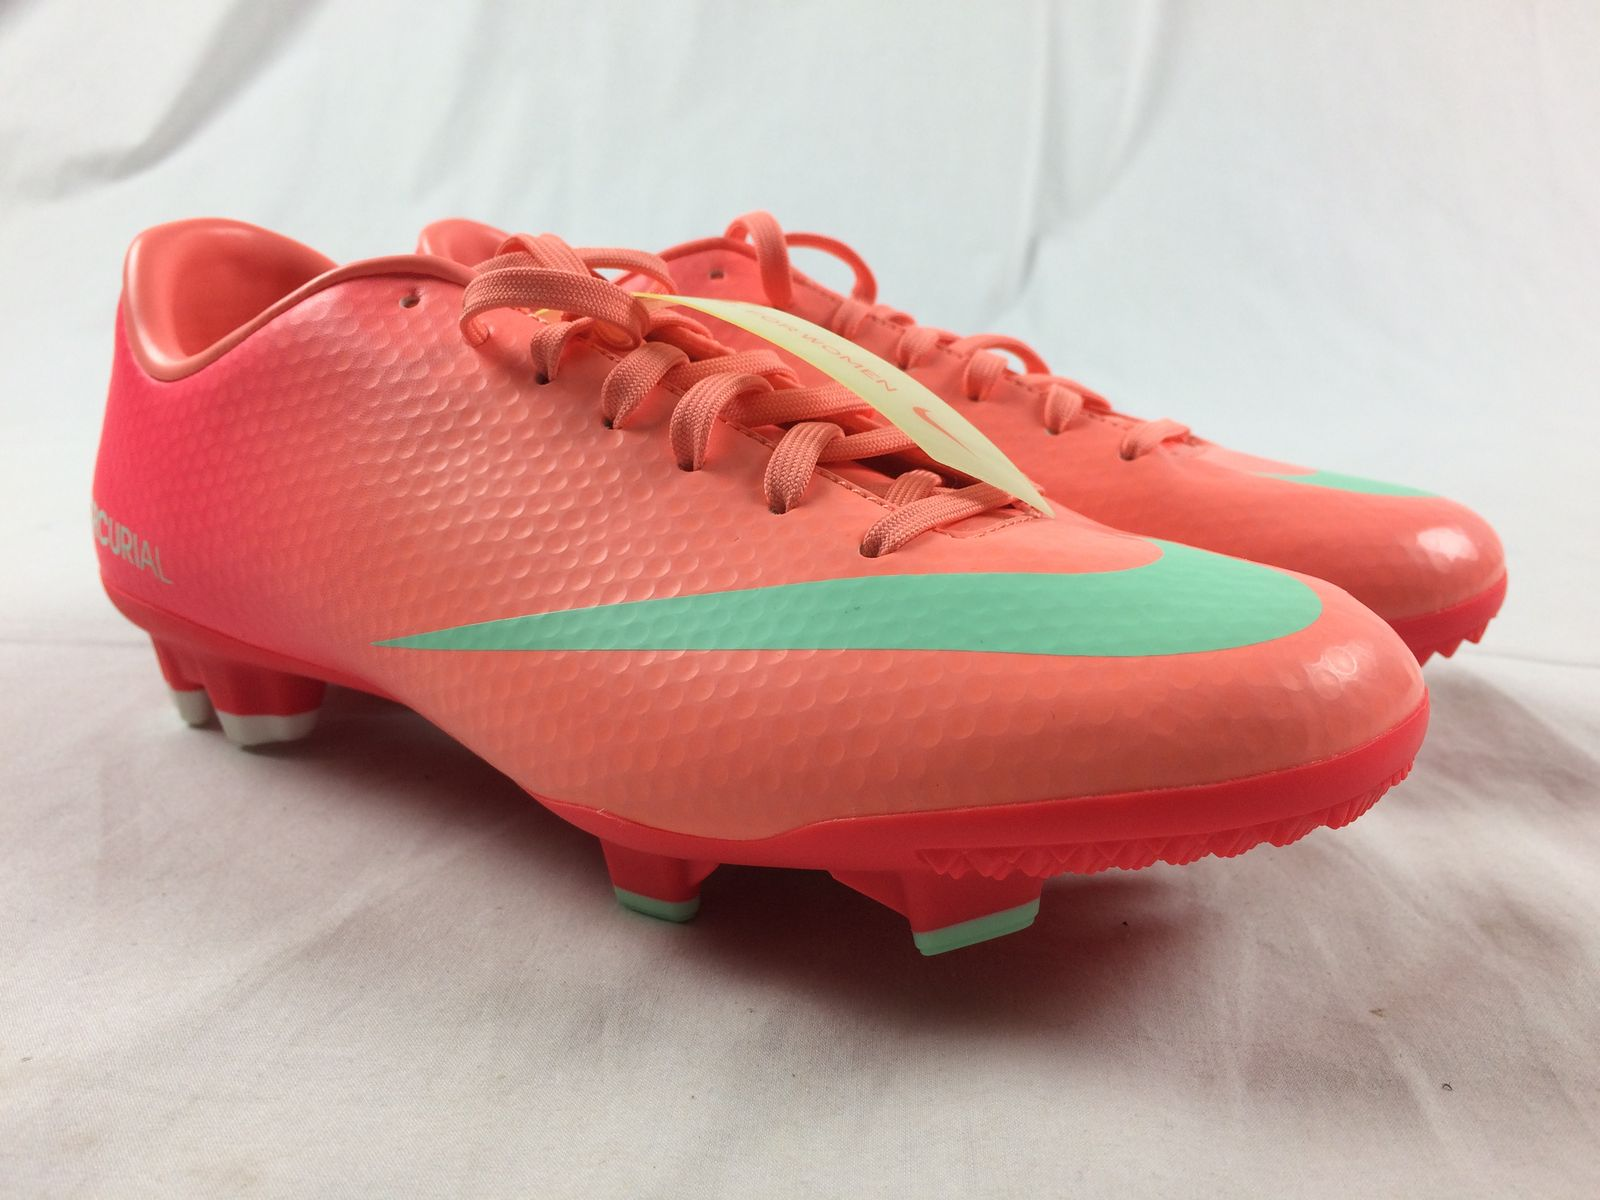 fb5883ac Details about NEW Nike Mercurial Victory IV FG - Pink Cleats (Women's 6.5)